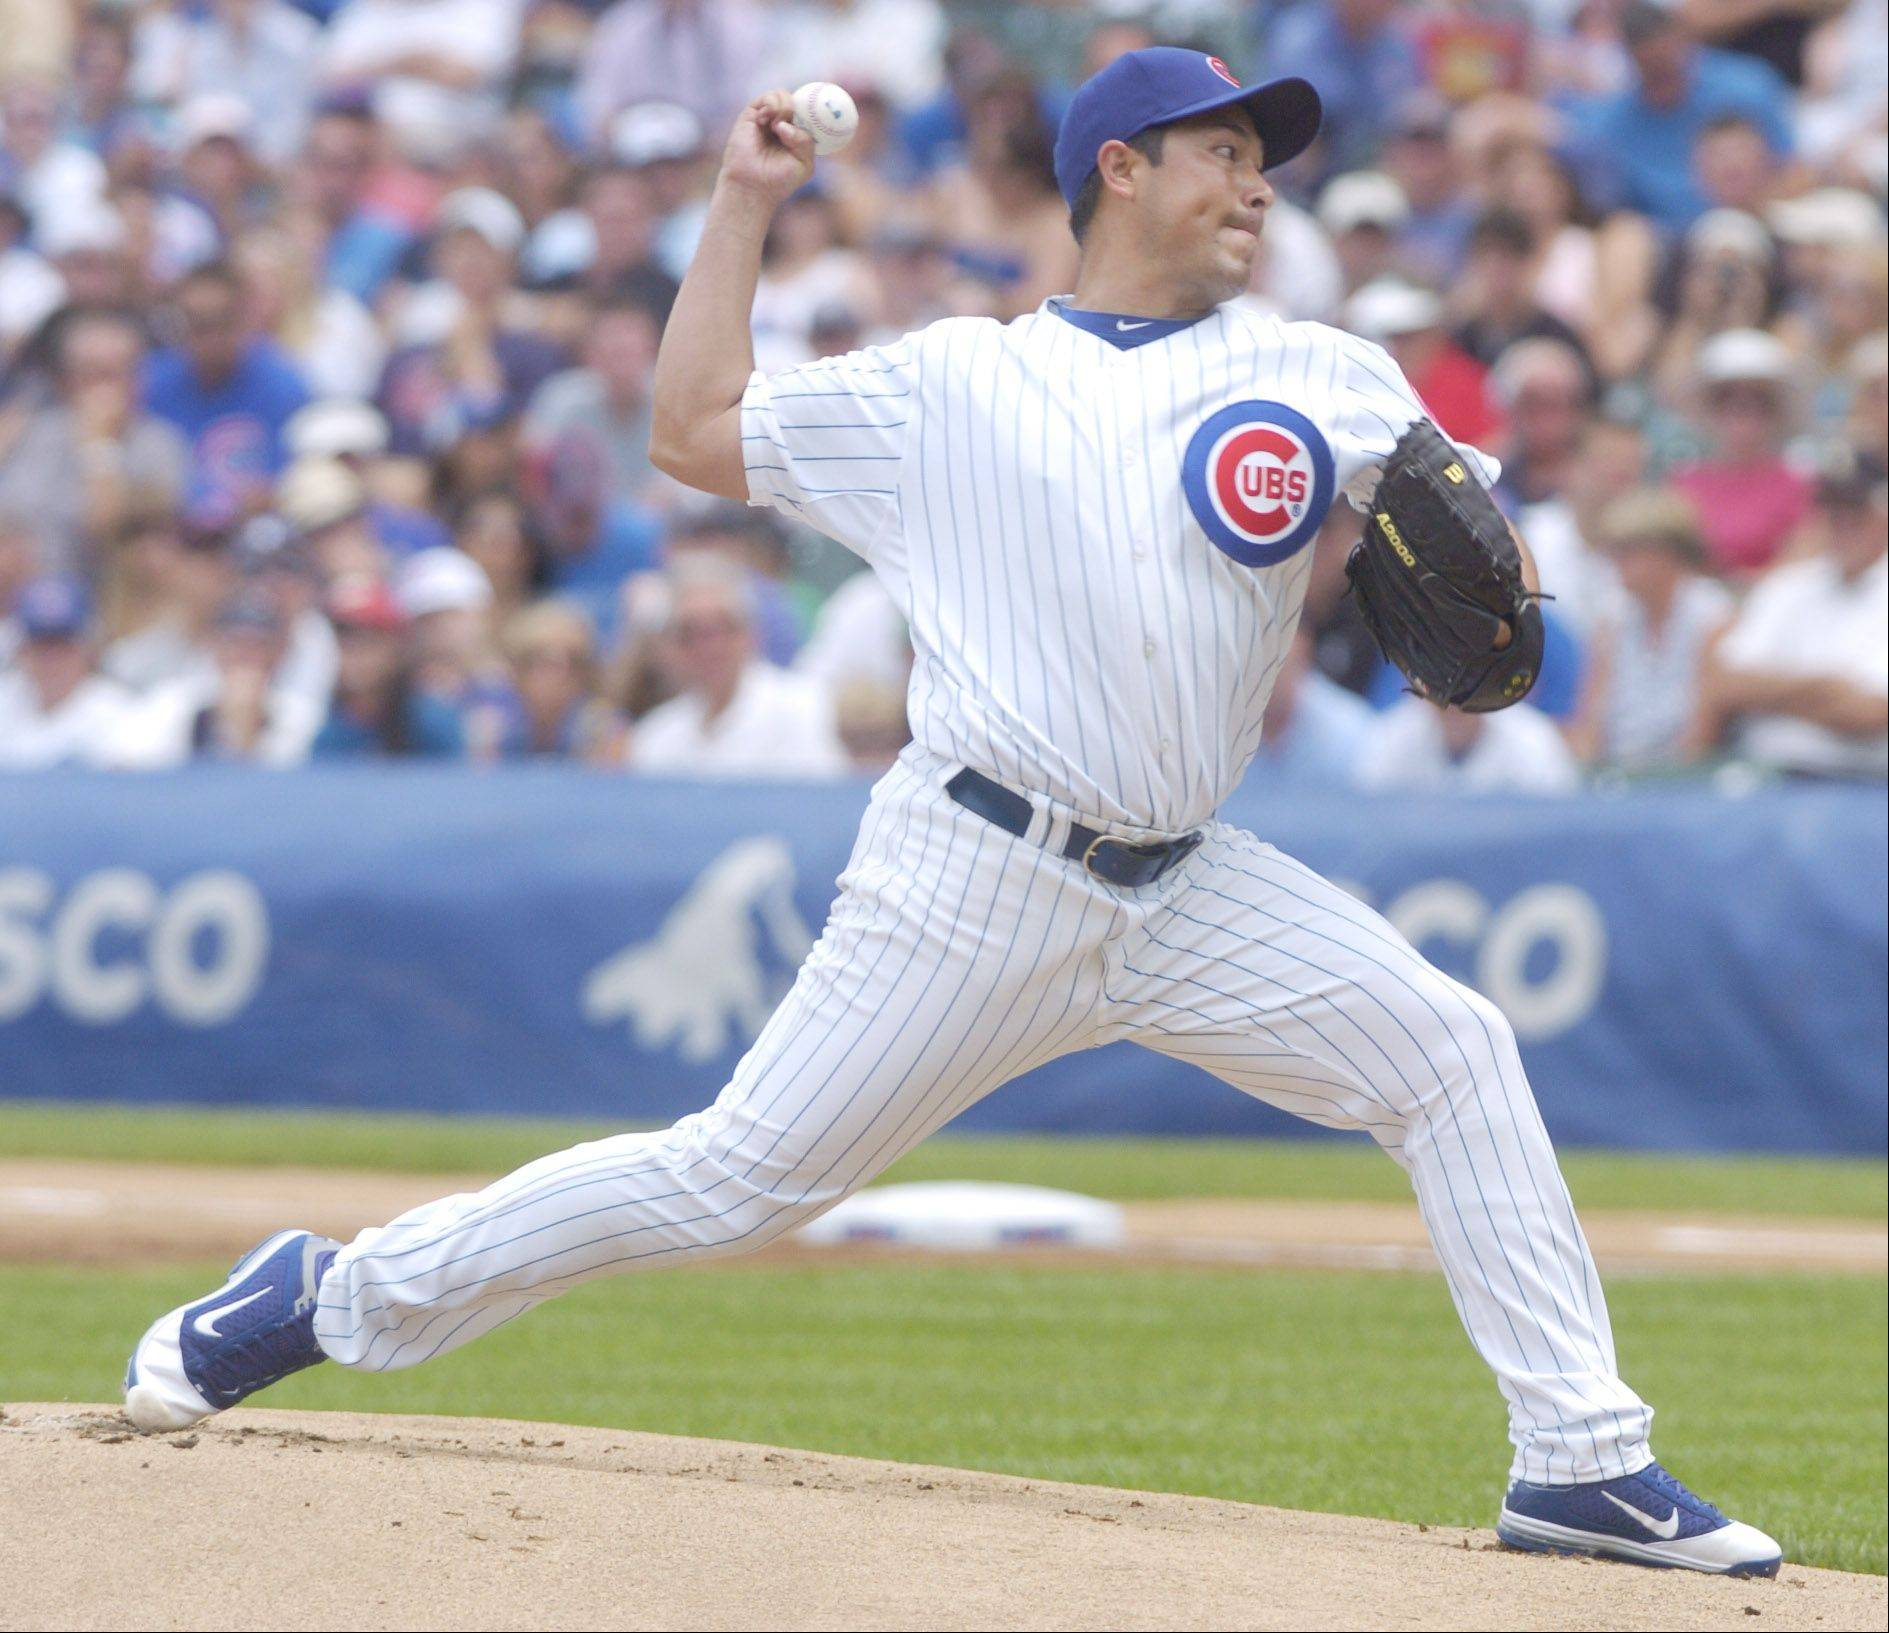 Cubs starting pitcher Rodrigo Lopez delivers against the White Sox Sunday.